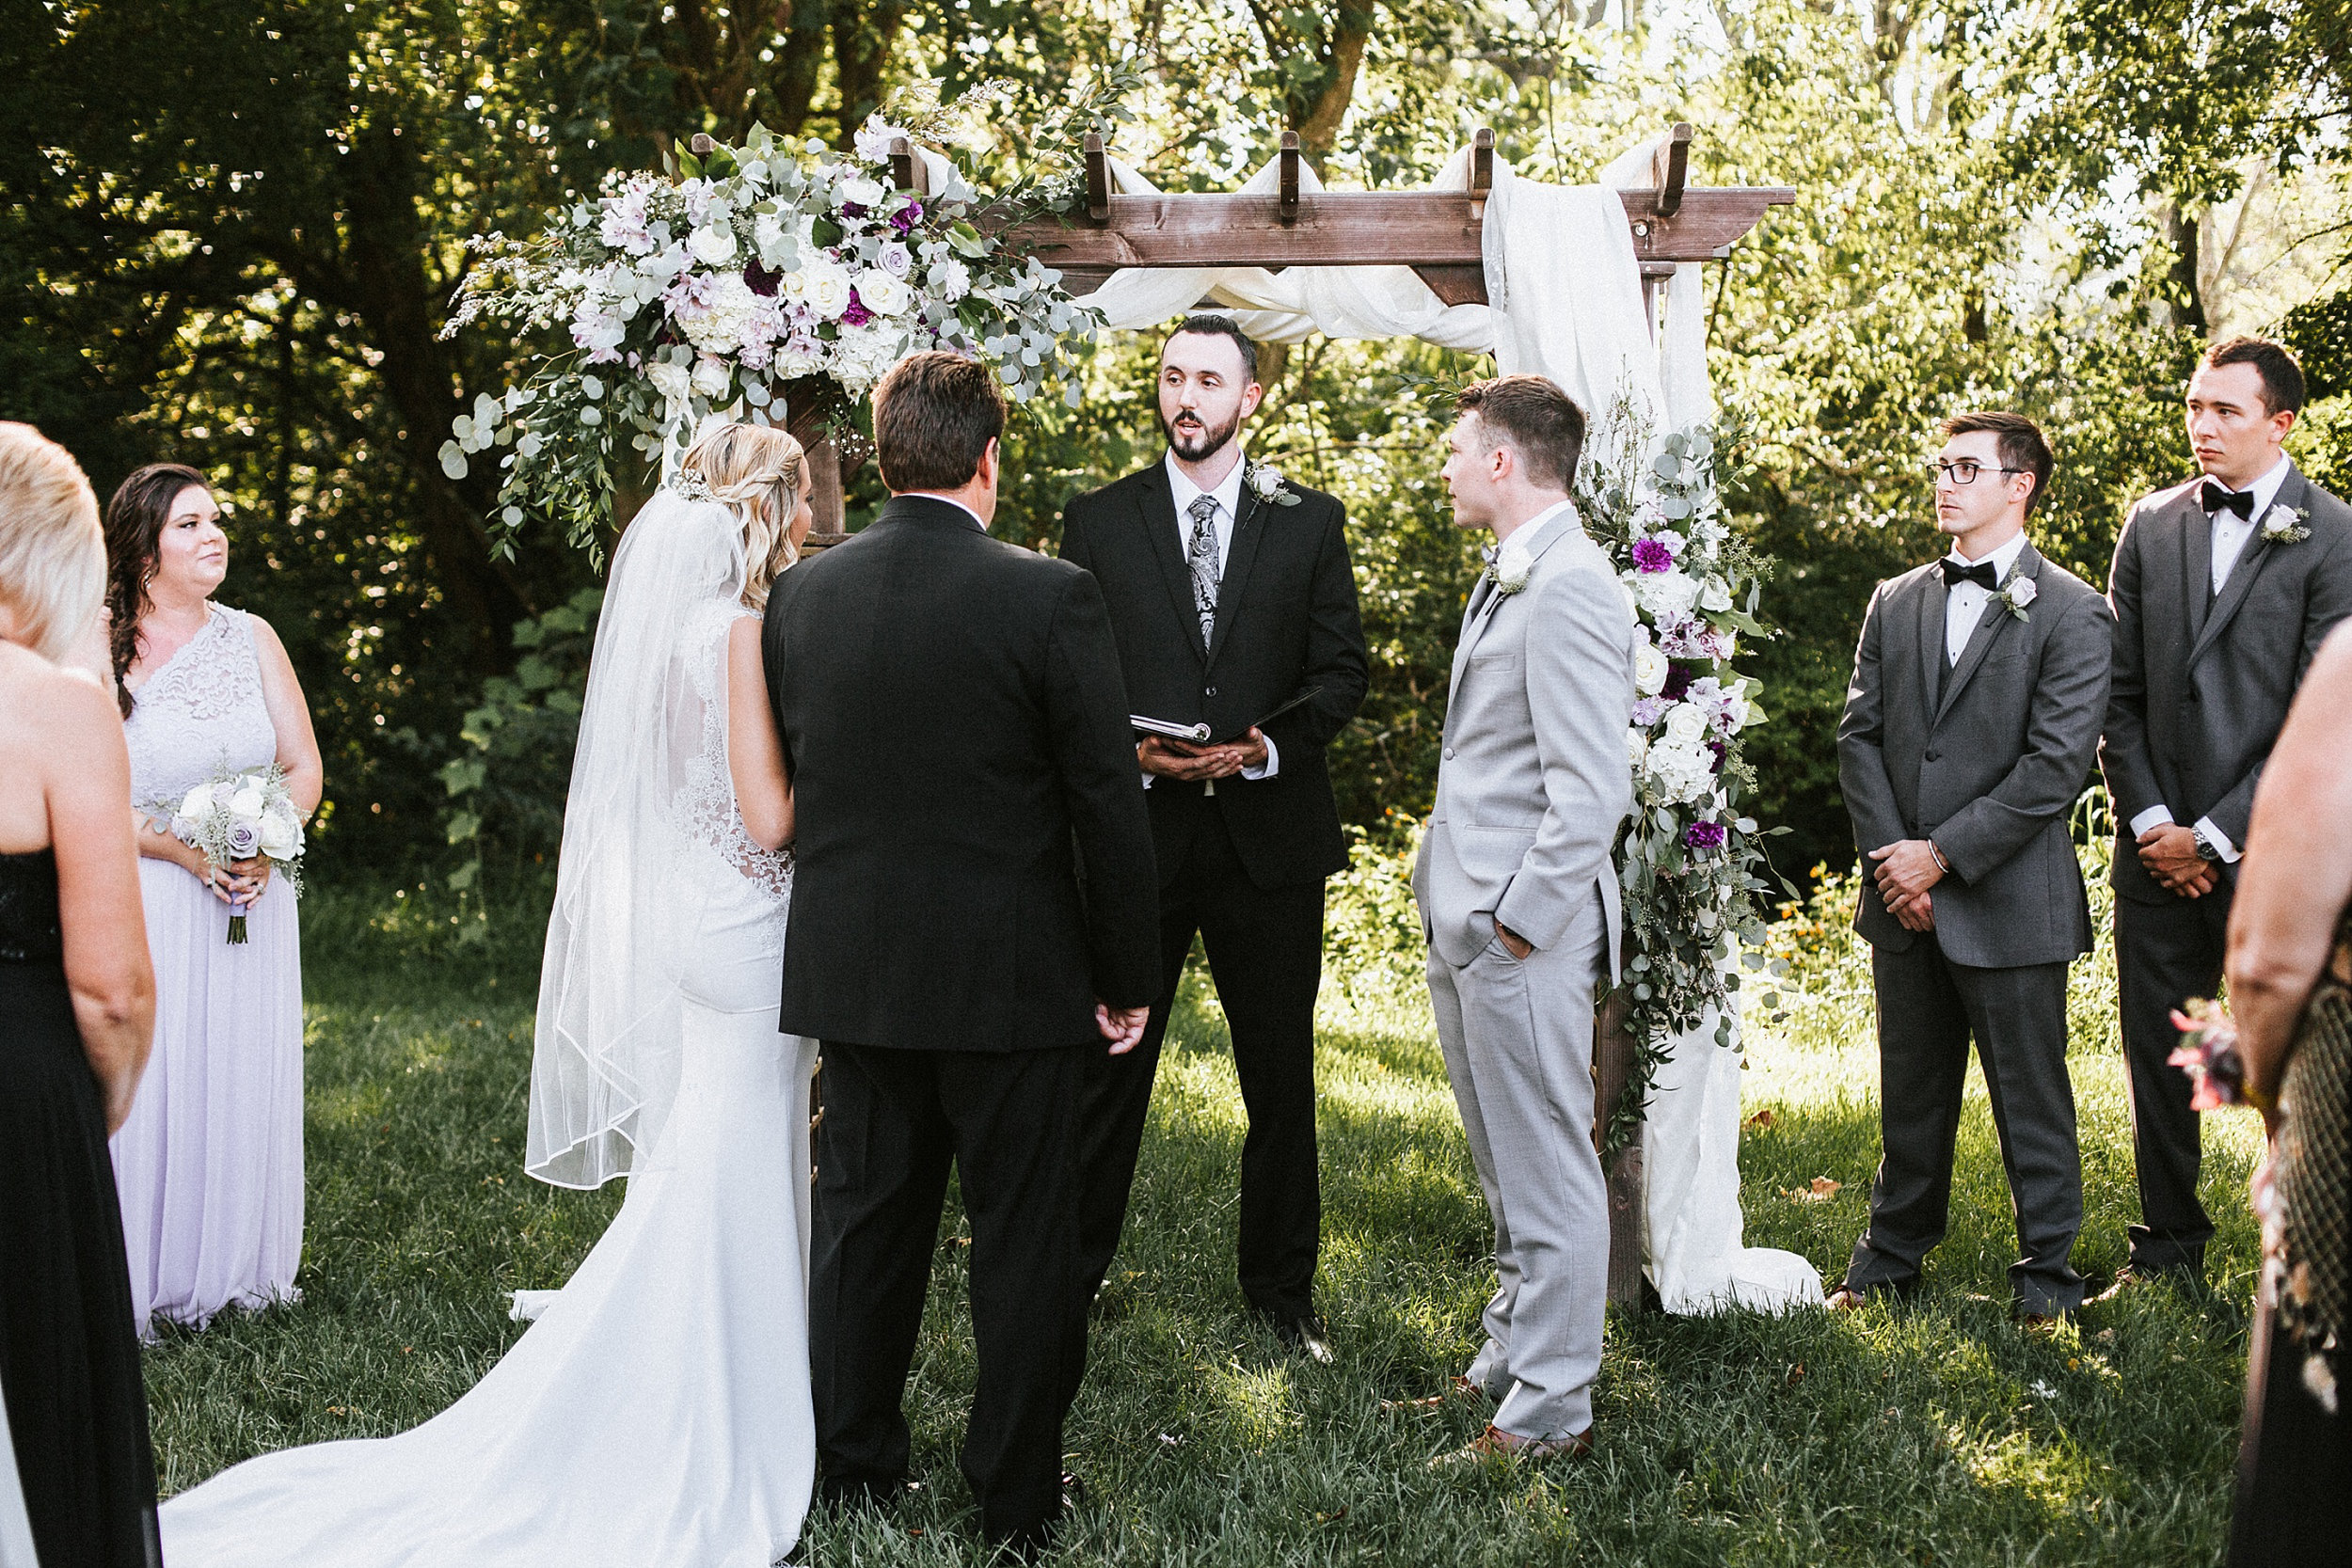 Brooke Townsend Photography - Cincinnati Wedding Photographer (114 of 230).jpg